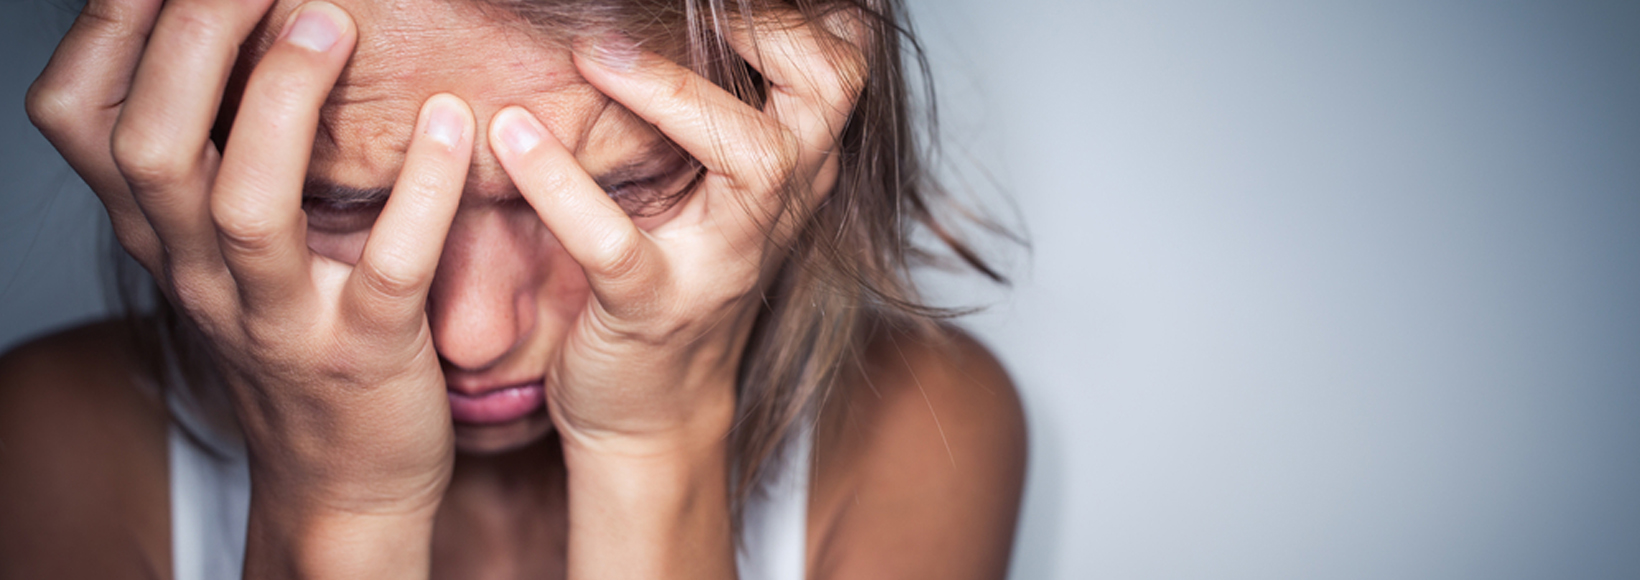 Coping with stress and anxiety during Covid-19